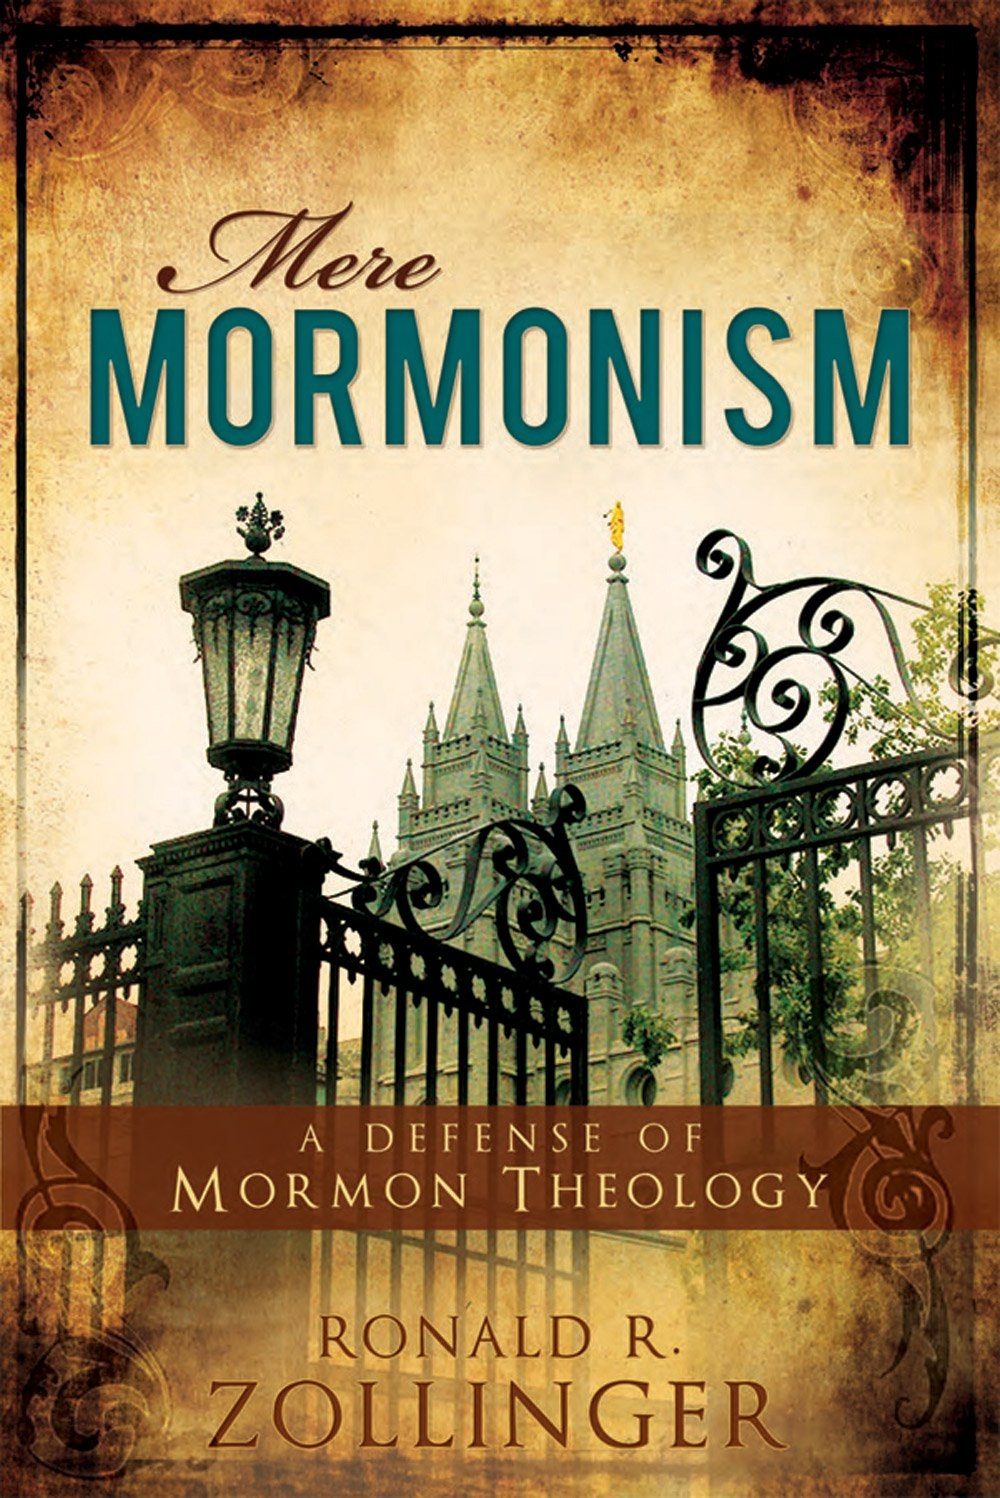 Image for Mere Mormonism - Defense of Mormon Theology